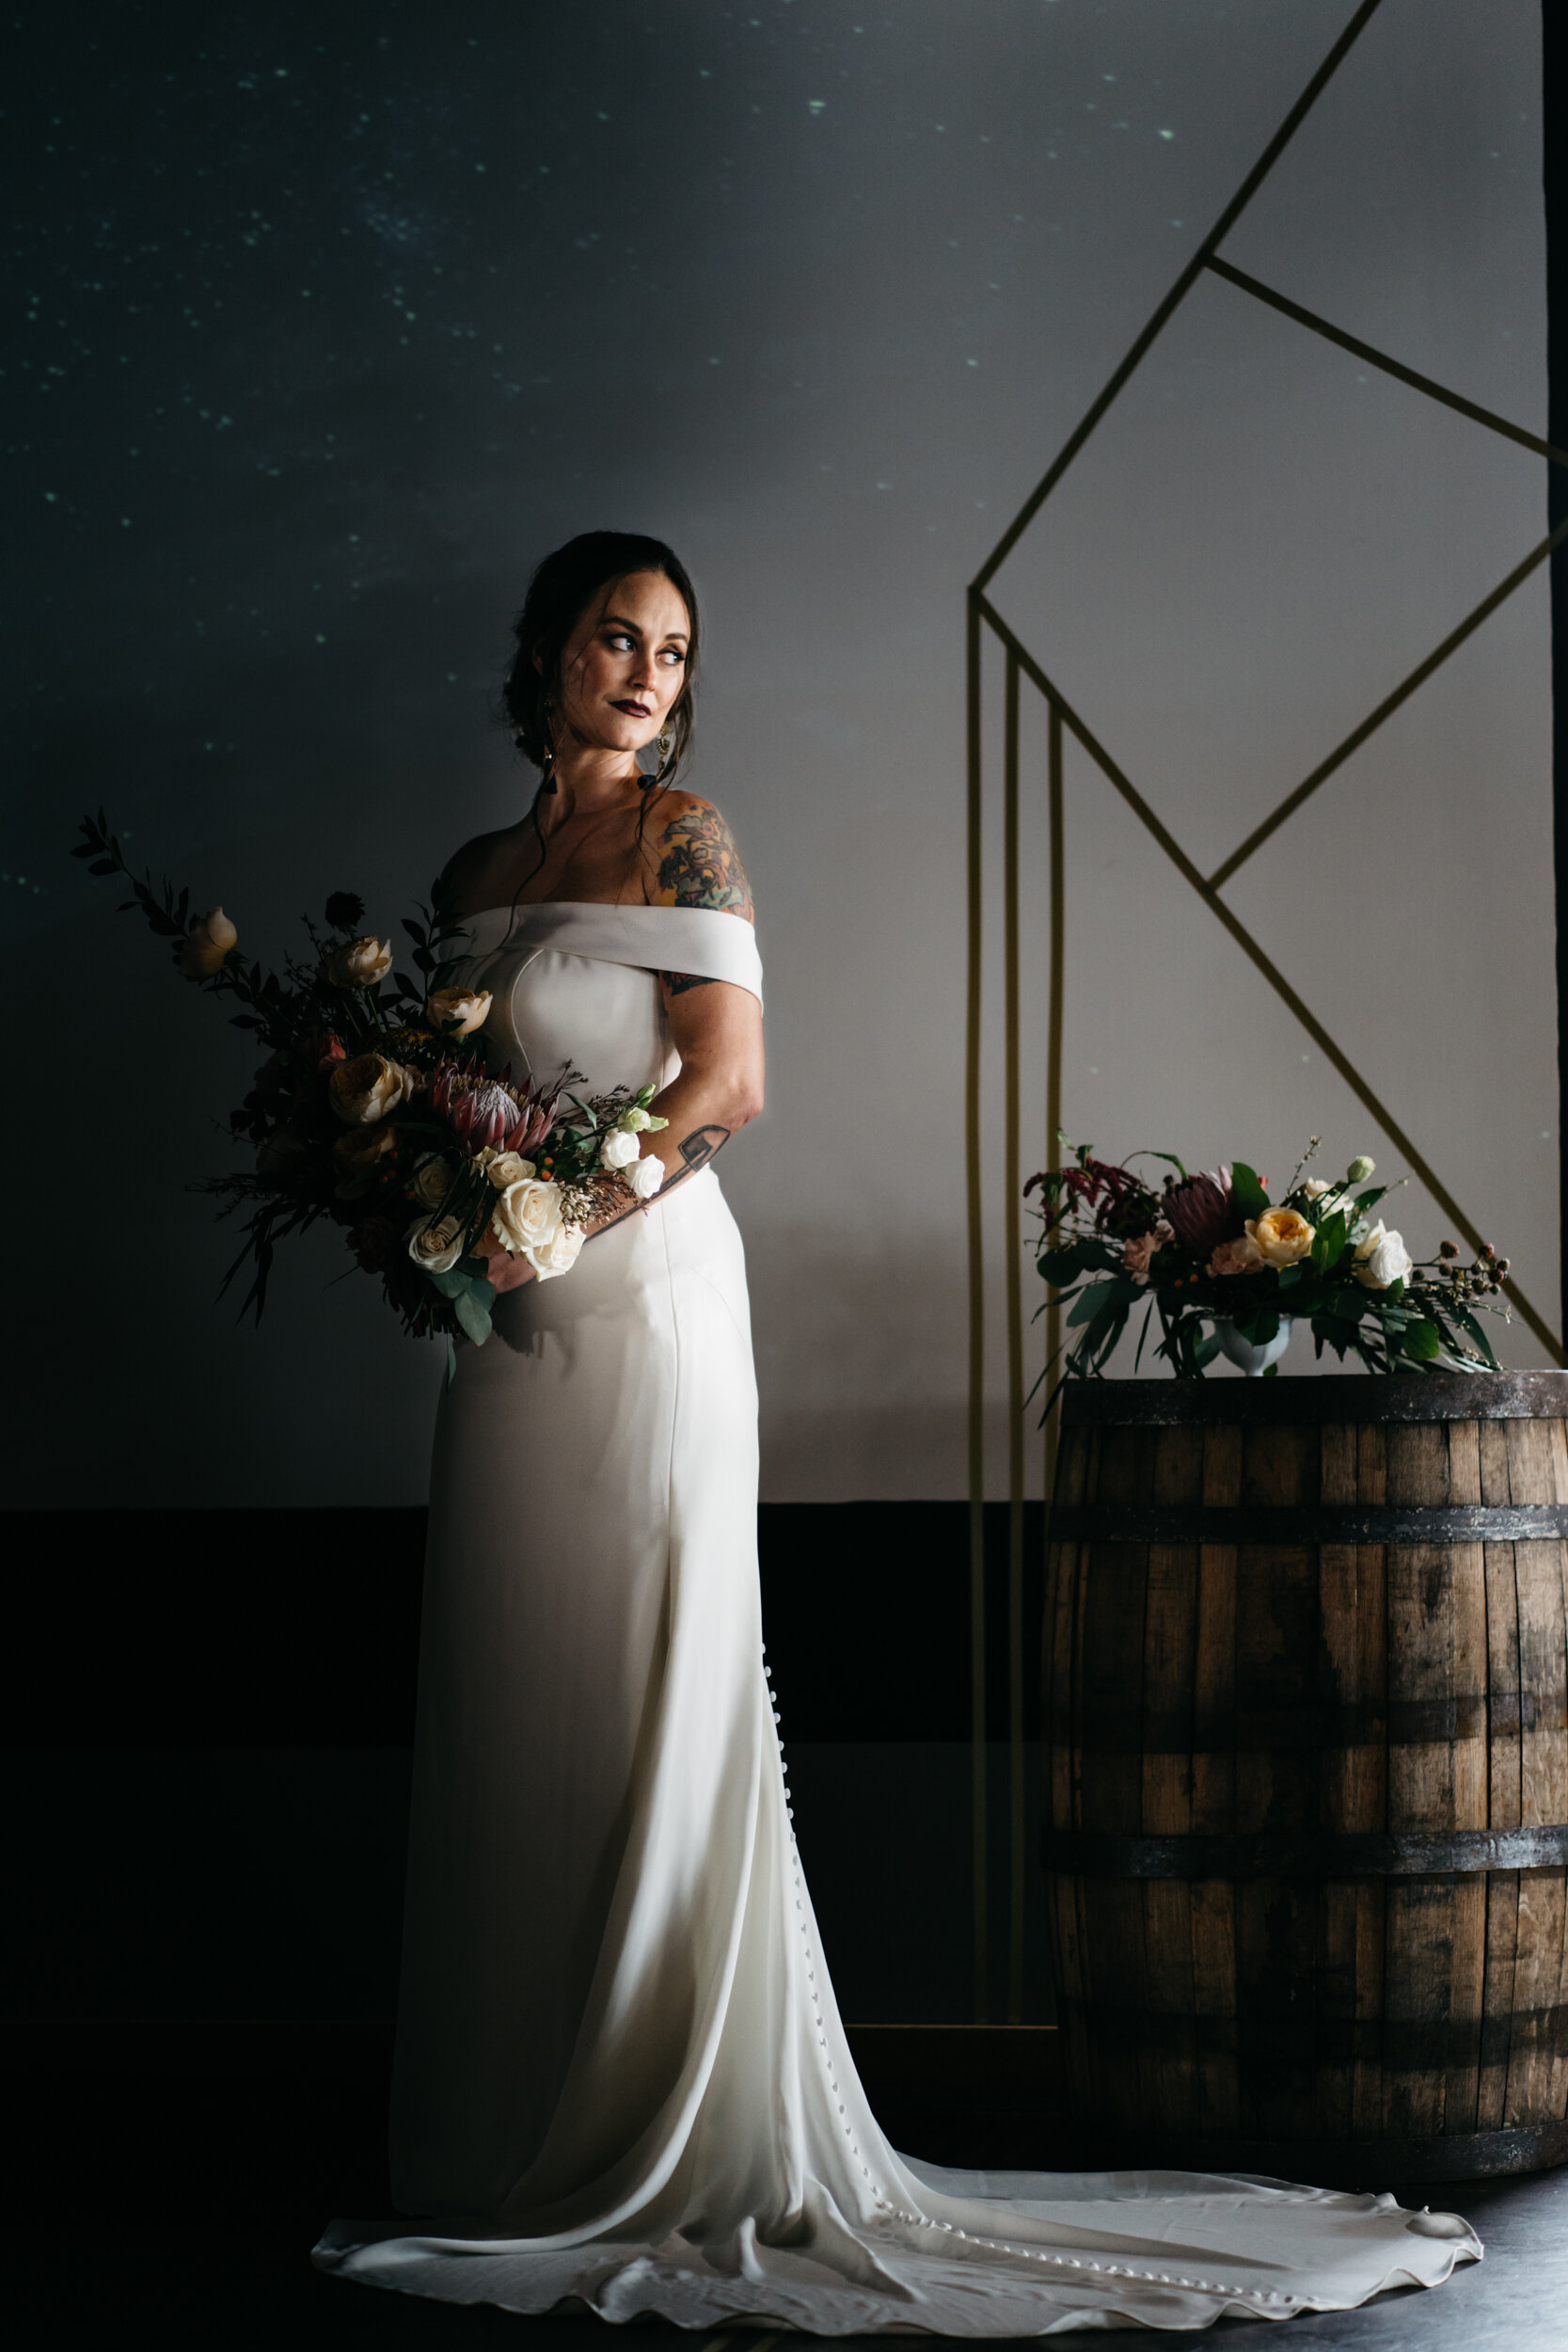 Bride wearing a Norman's Bridal Gown at Missouri Spirits with romantic oversized bouquet by Queen City Blooms - Industrial Wedding Inspiration with Destination Wedding Planner Unions With Celia and Destination Photographer Sean Reid Photography